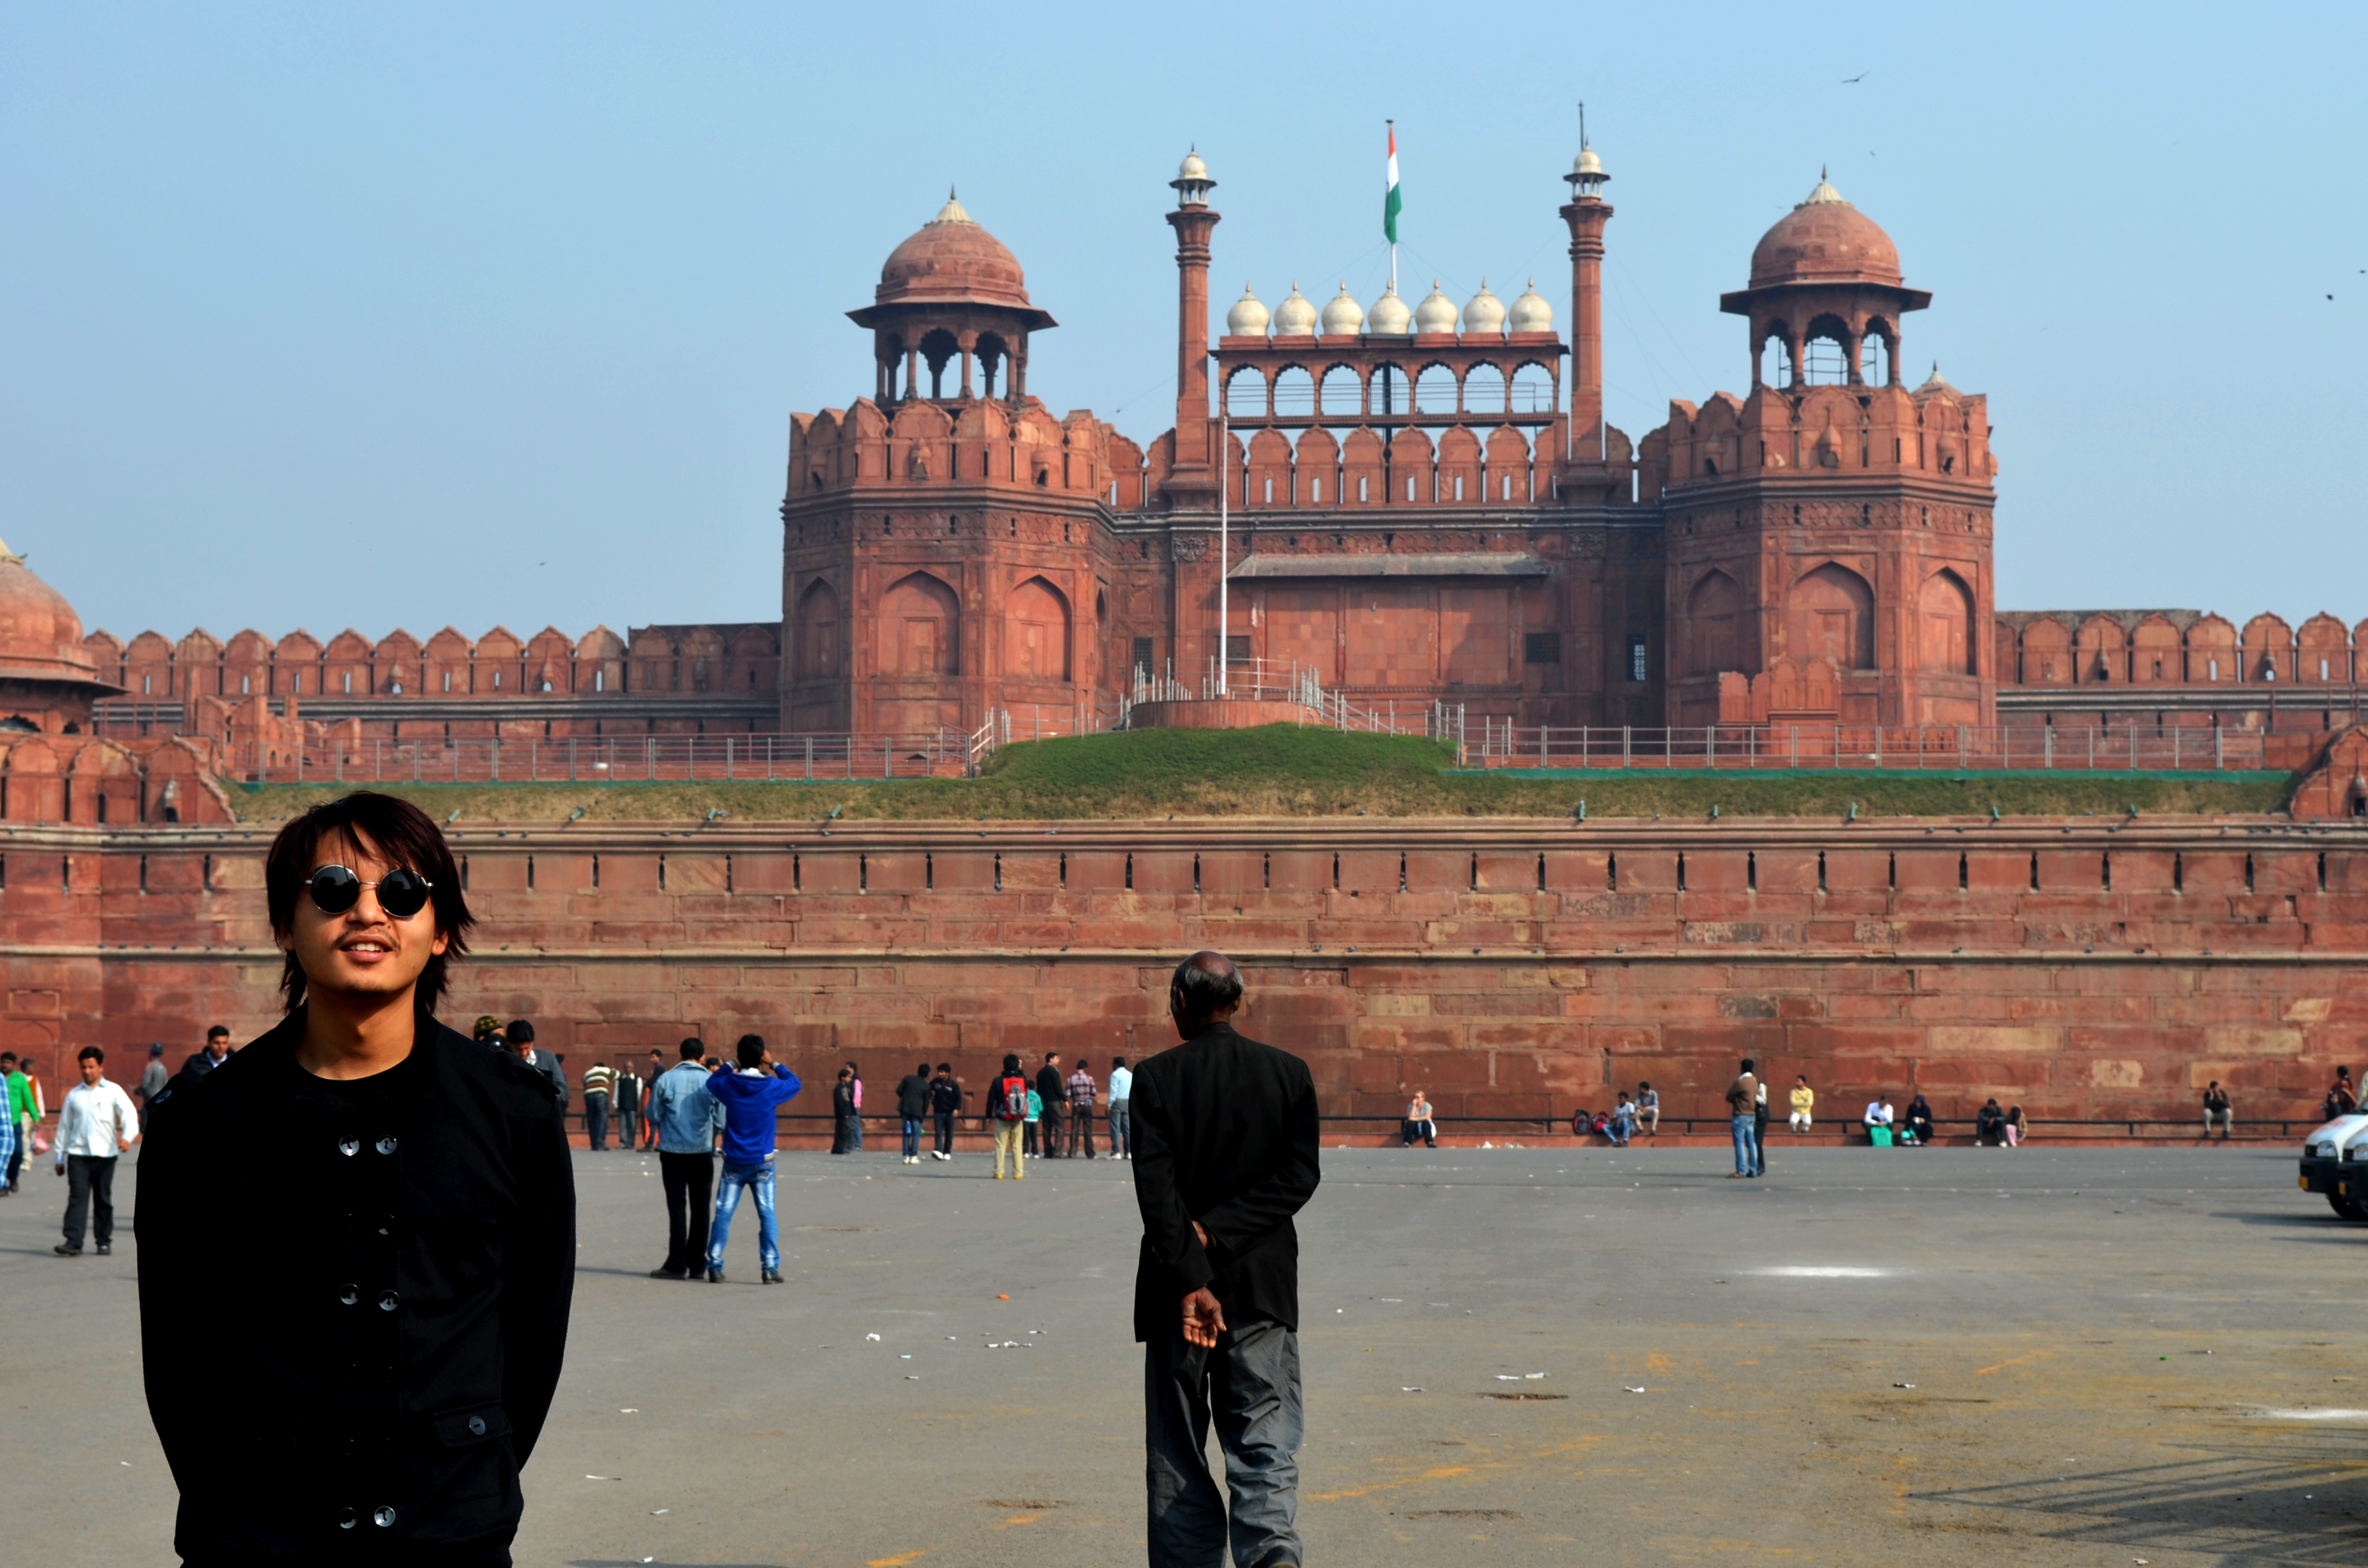 been in delhi for quite sometime now,and starting my blog here with this pic of me infront of the red fort.